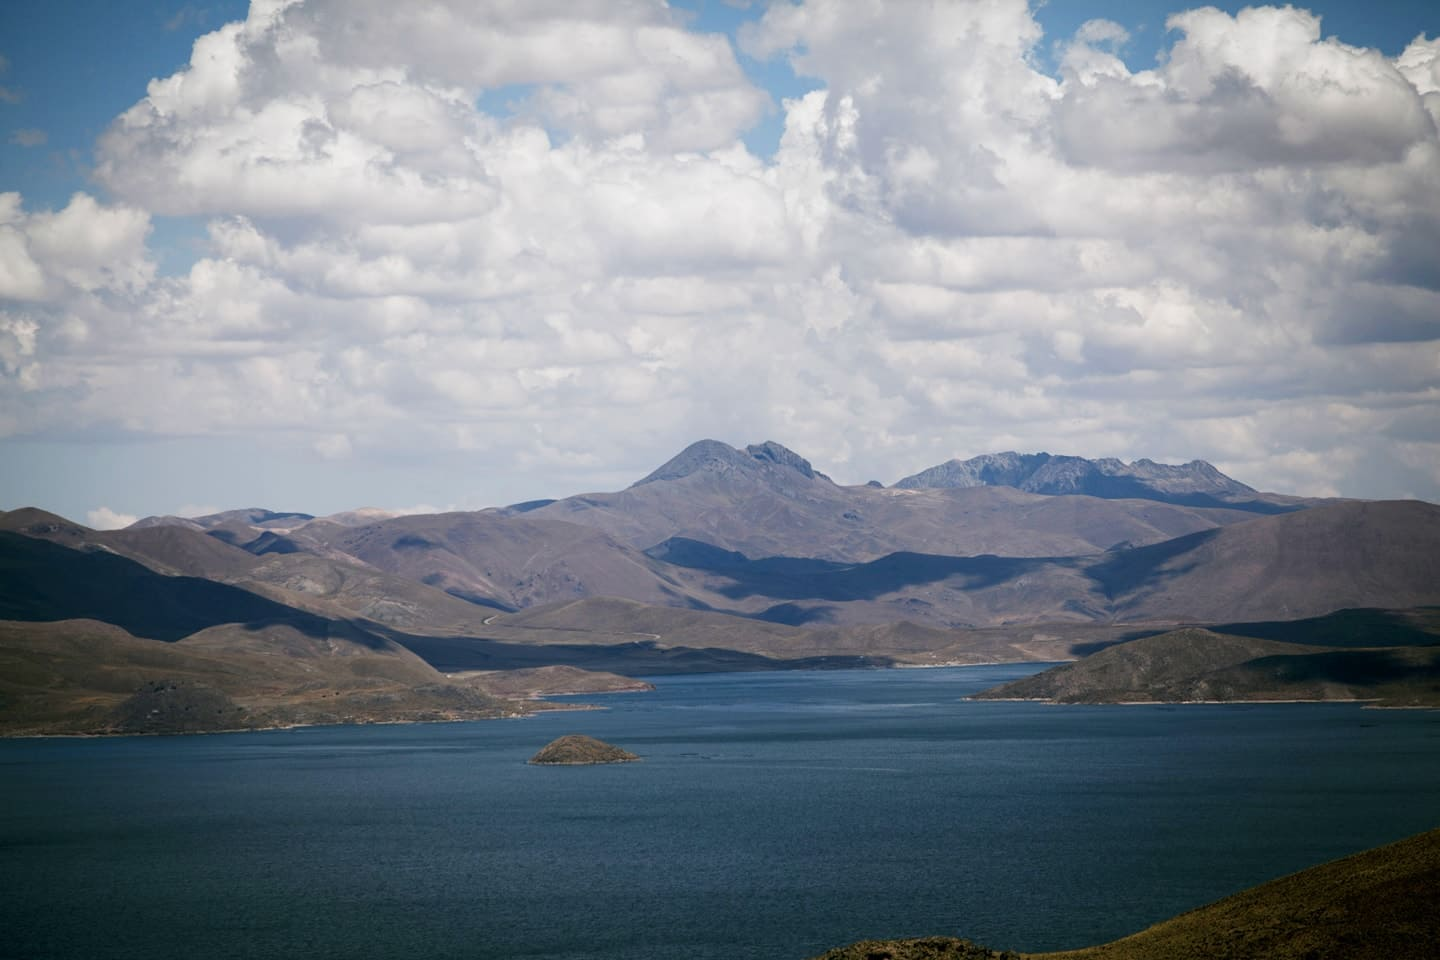 Lagunillas set of lagoons a landascape in Peru with 4M Express bus